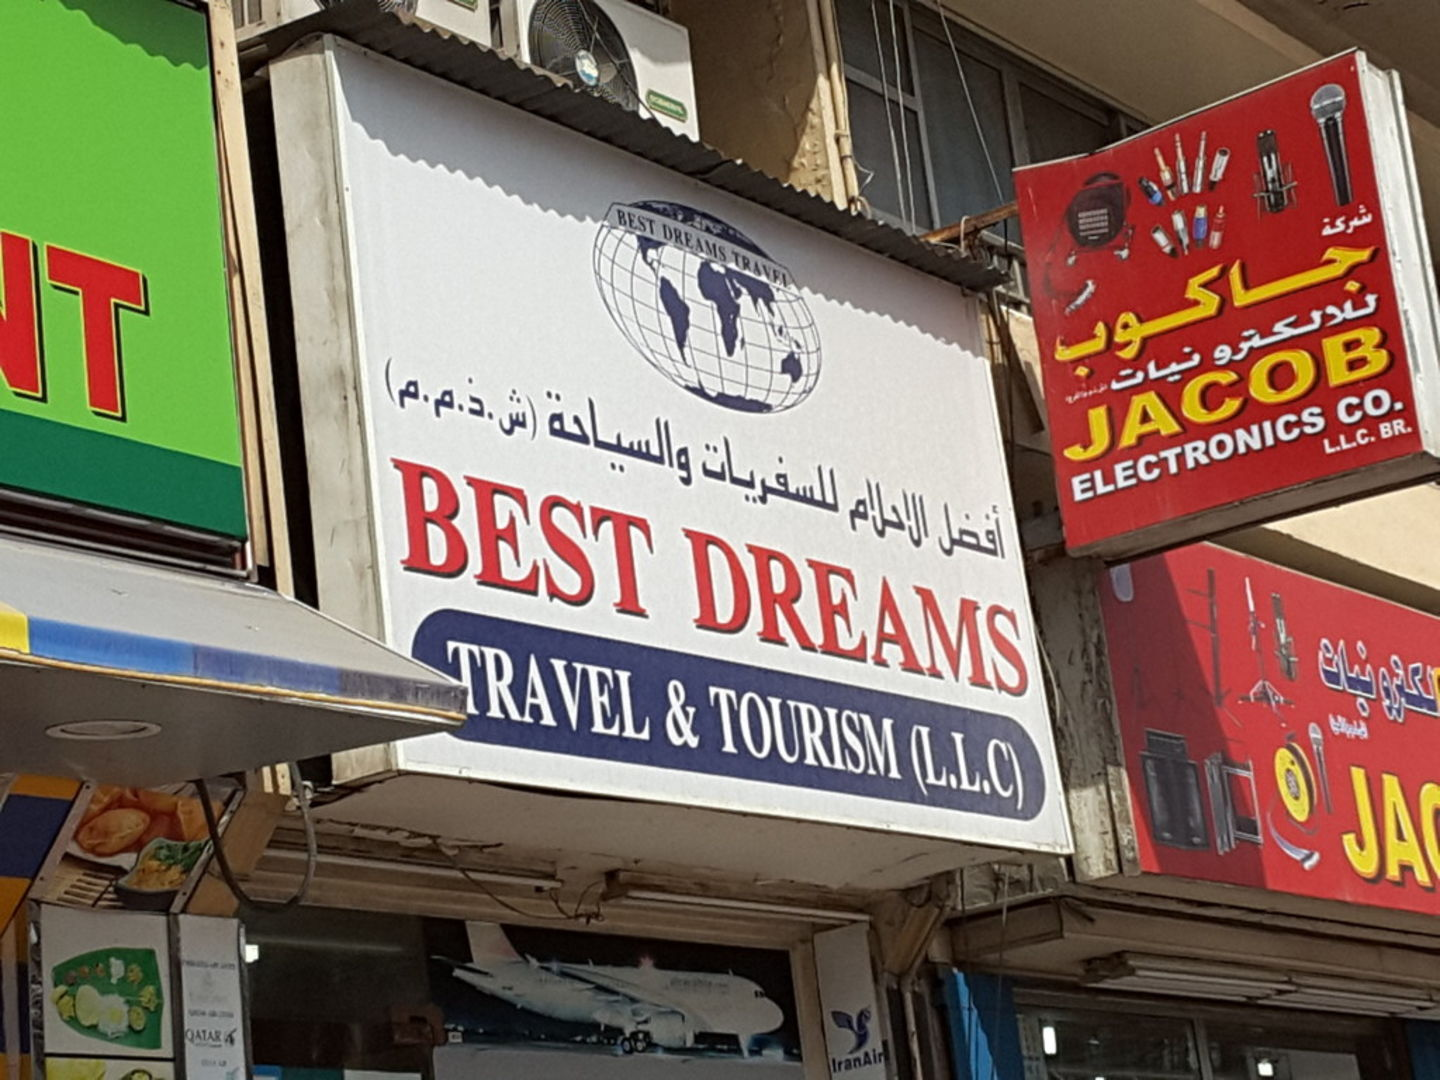 Jacobs Electronics Dubai Not Lossing Wiring Diagram Ignition System Best Dreams Travel And Tourism Local Tours Activities In Naif Rh Hidubai Com Electronic